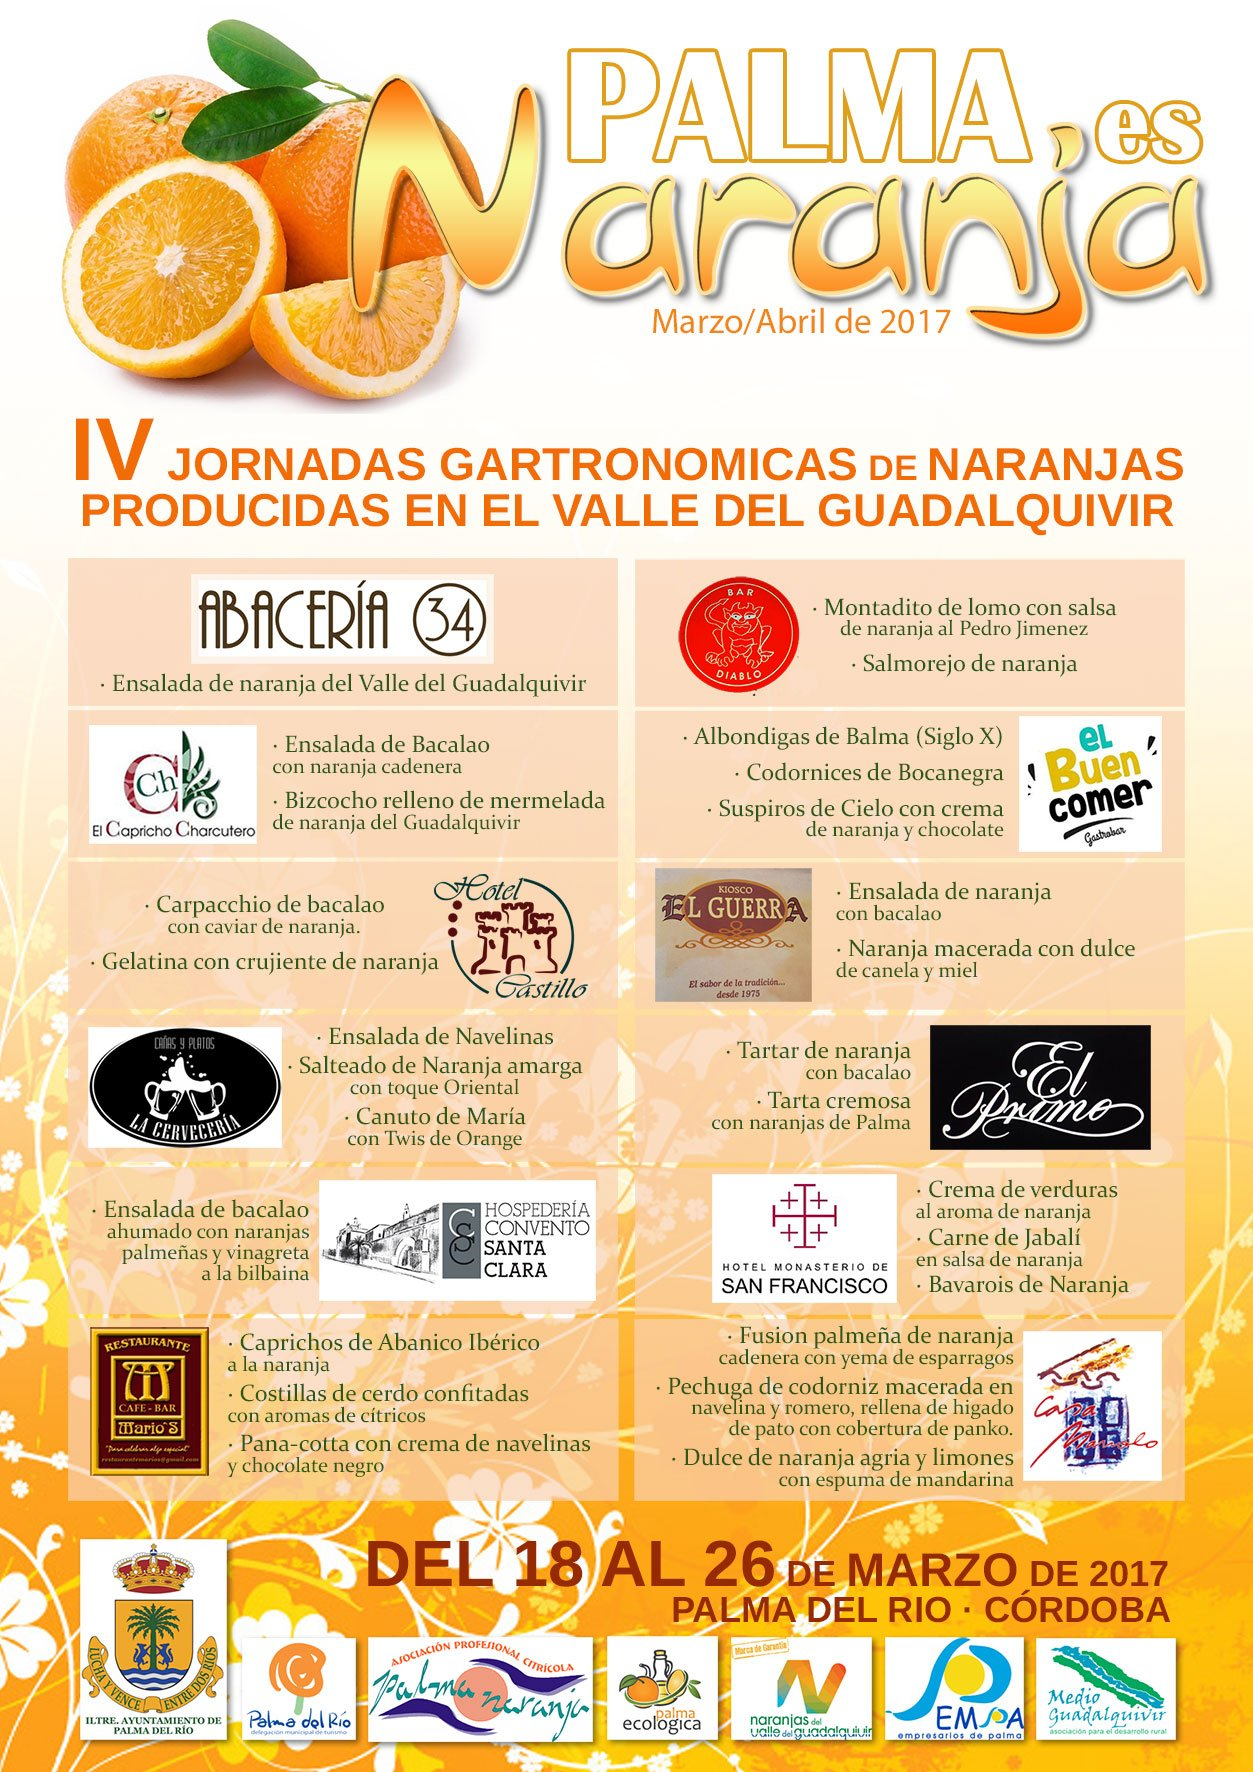 https://www.palmadelrio.es/sites/default/files/jornadas_gastronomicas_mes_naranja_2017.jpg